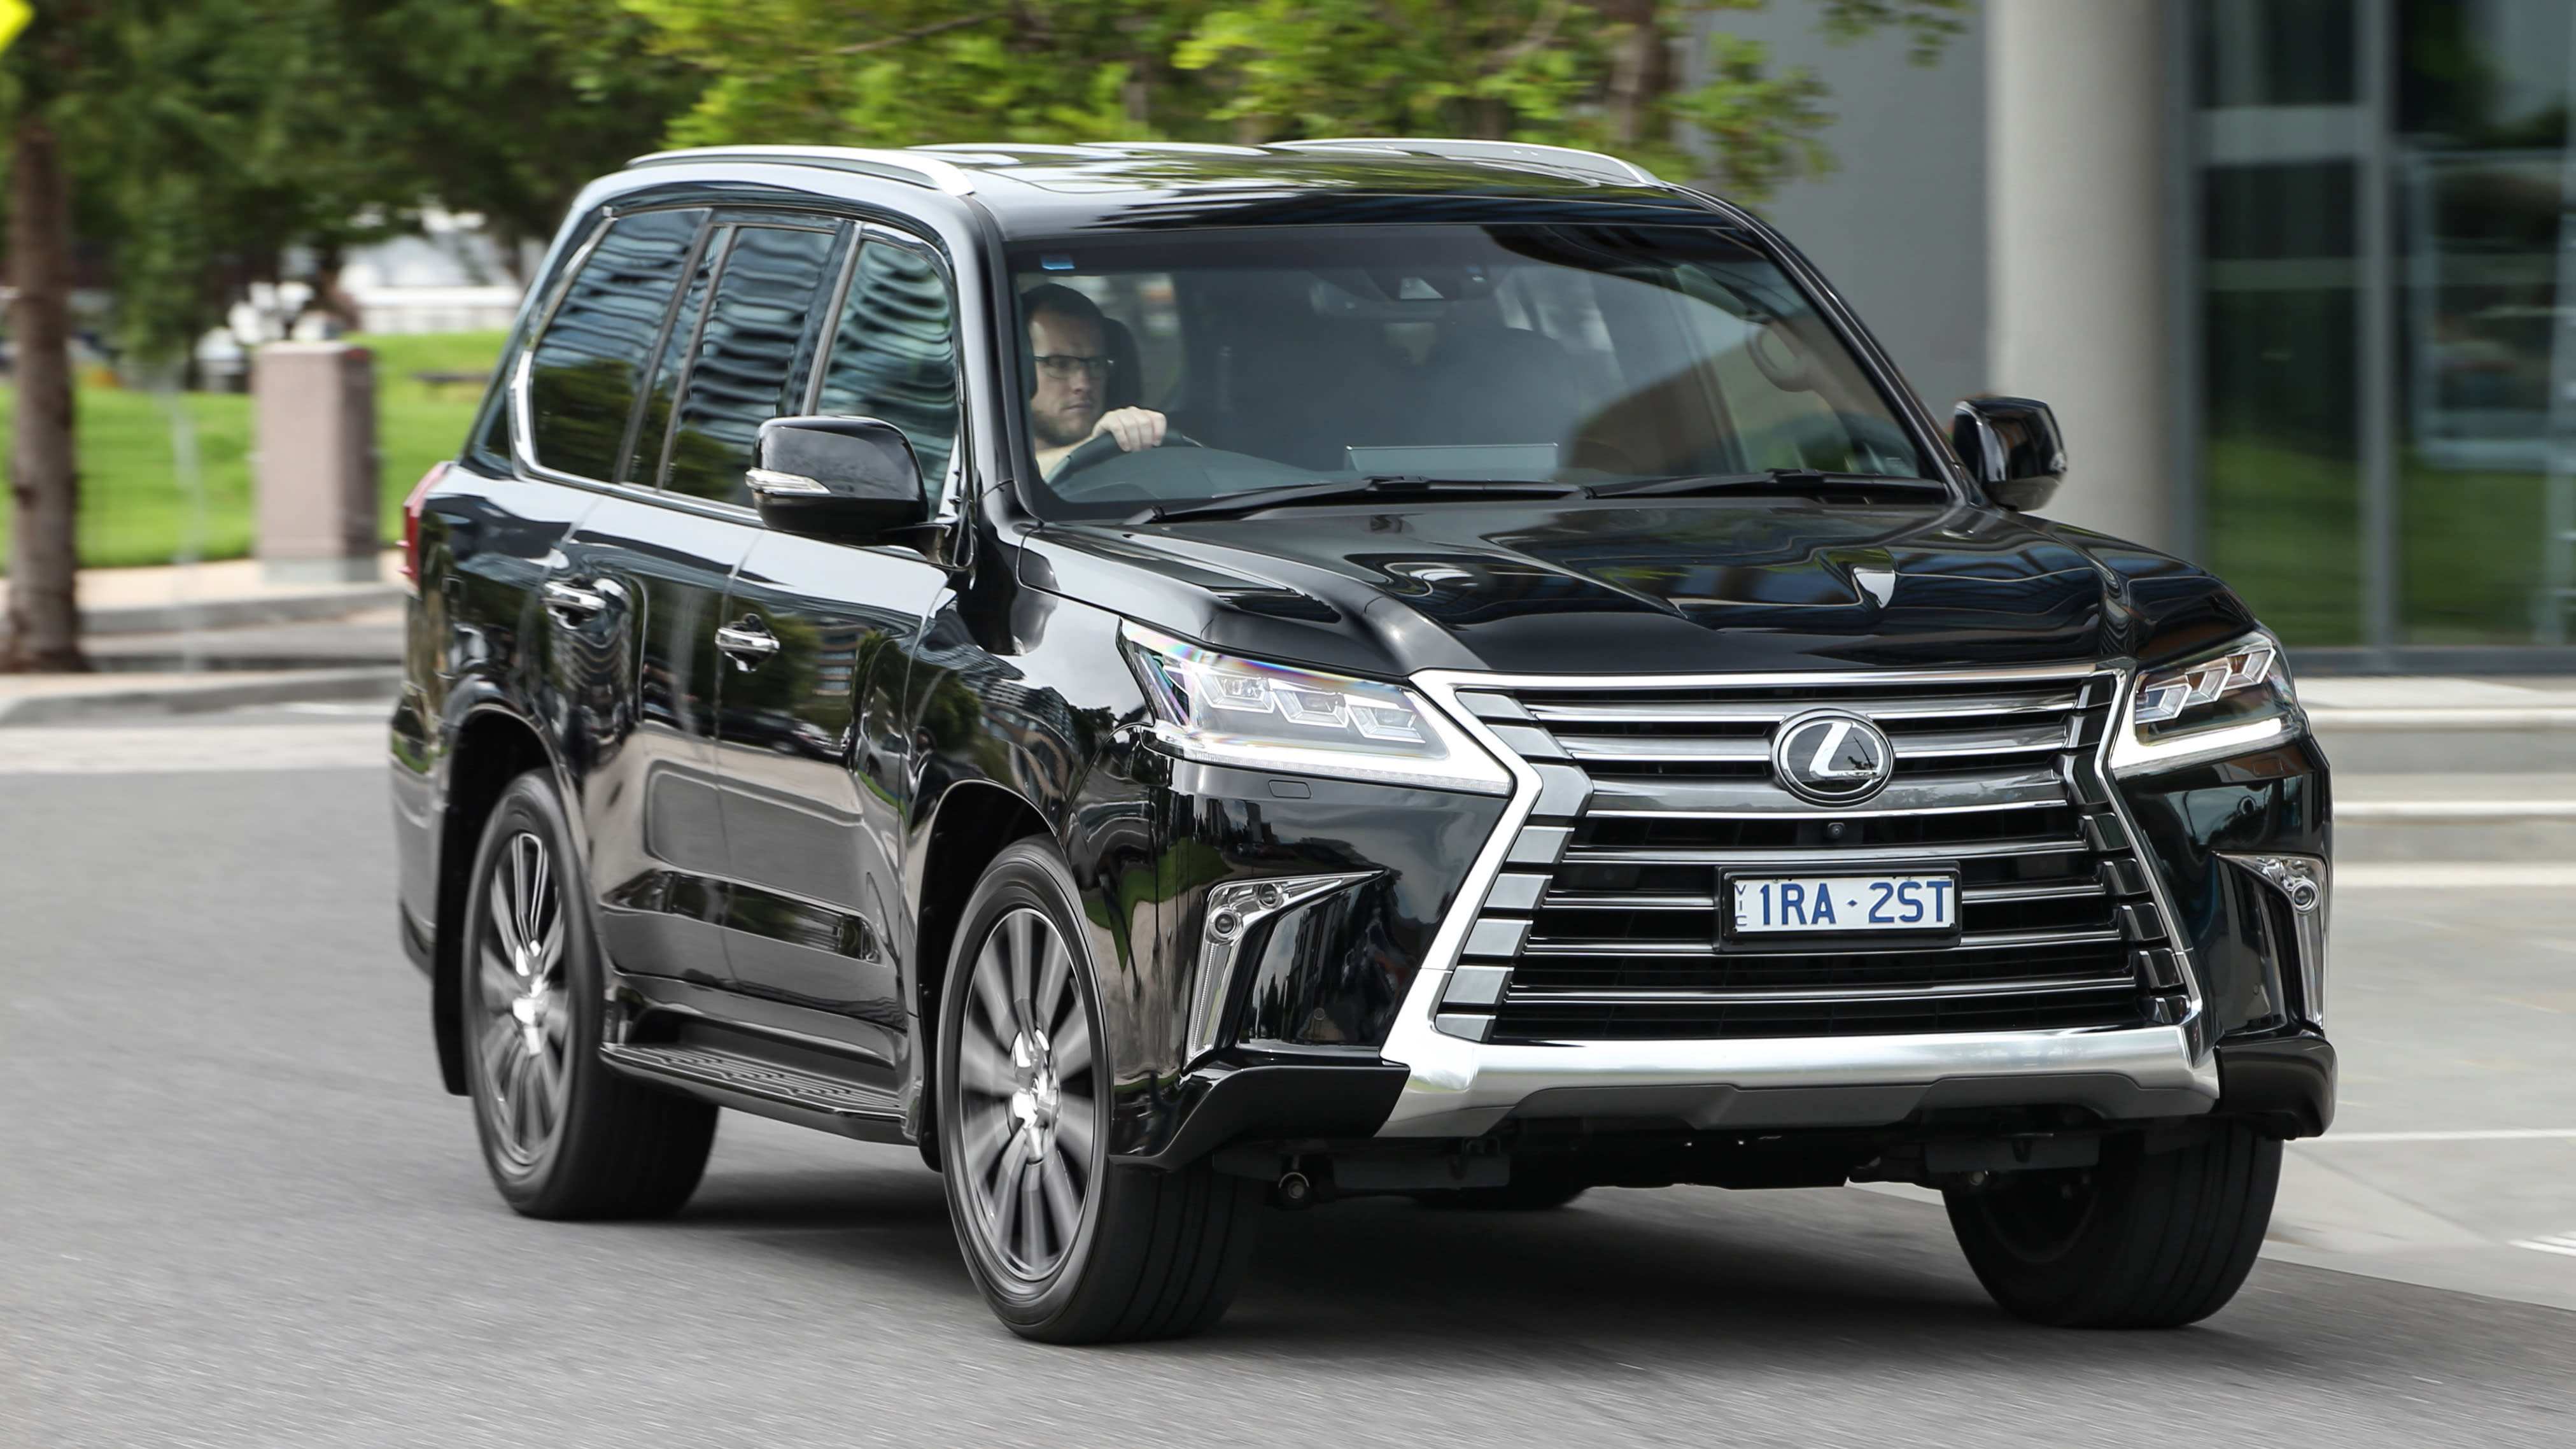 2020 Lexus LX570 review